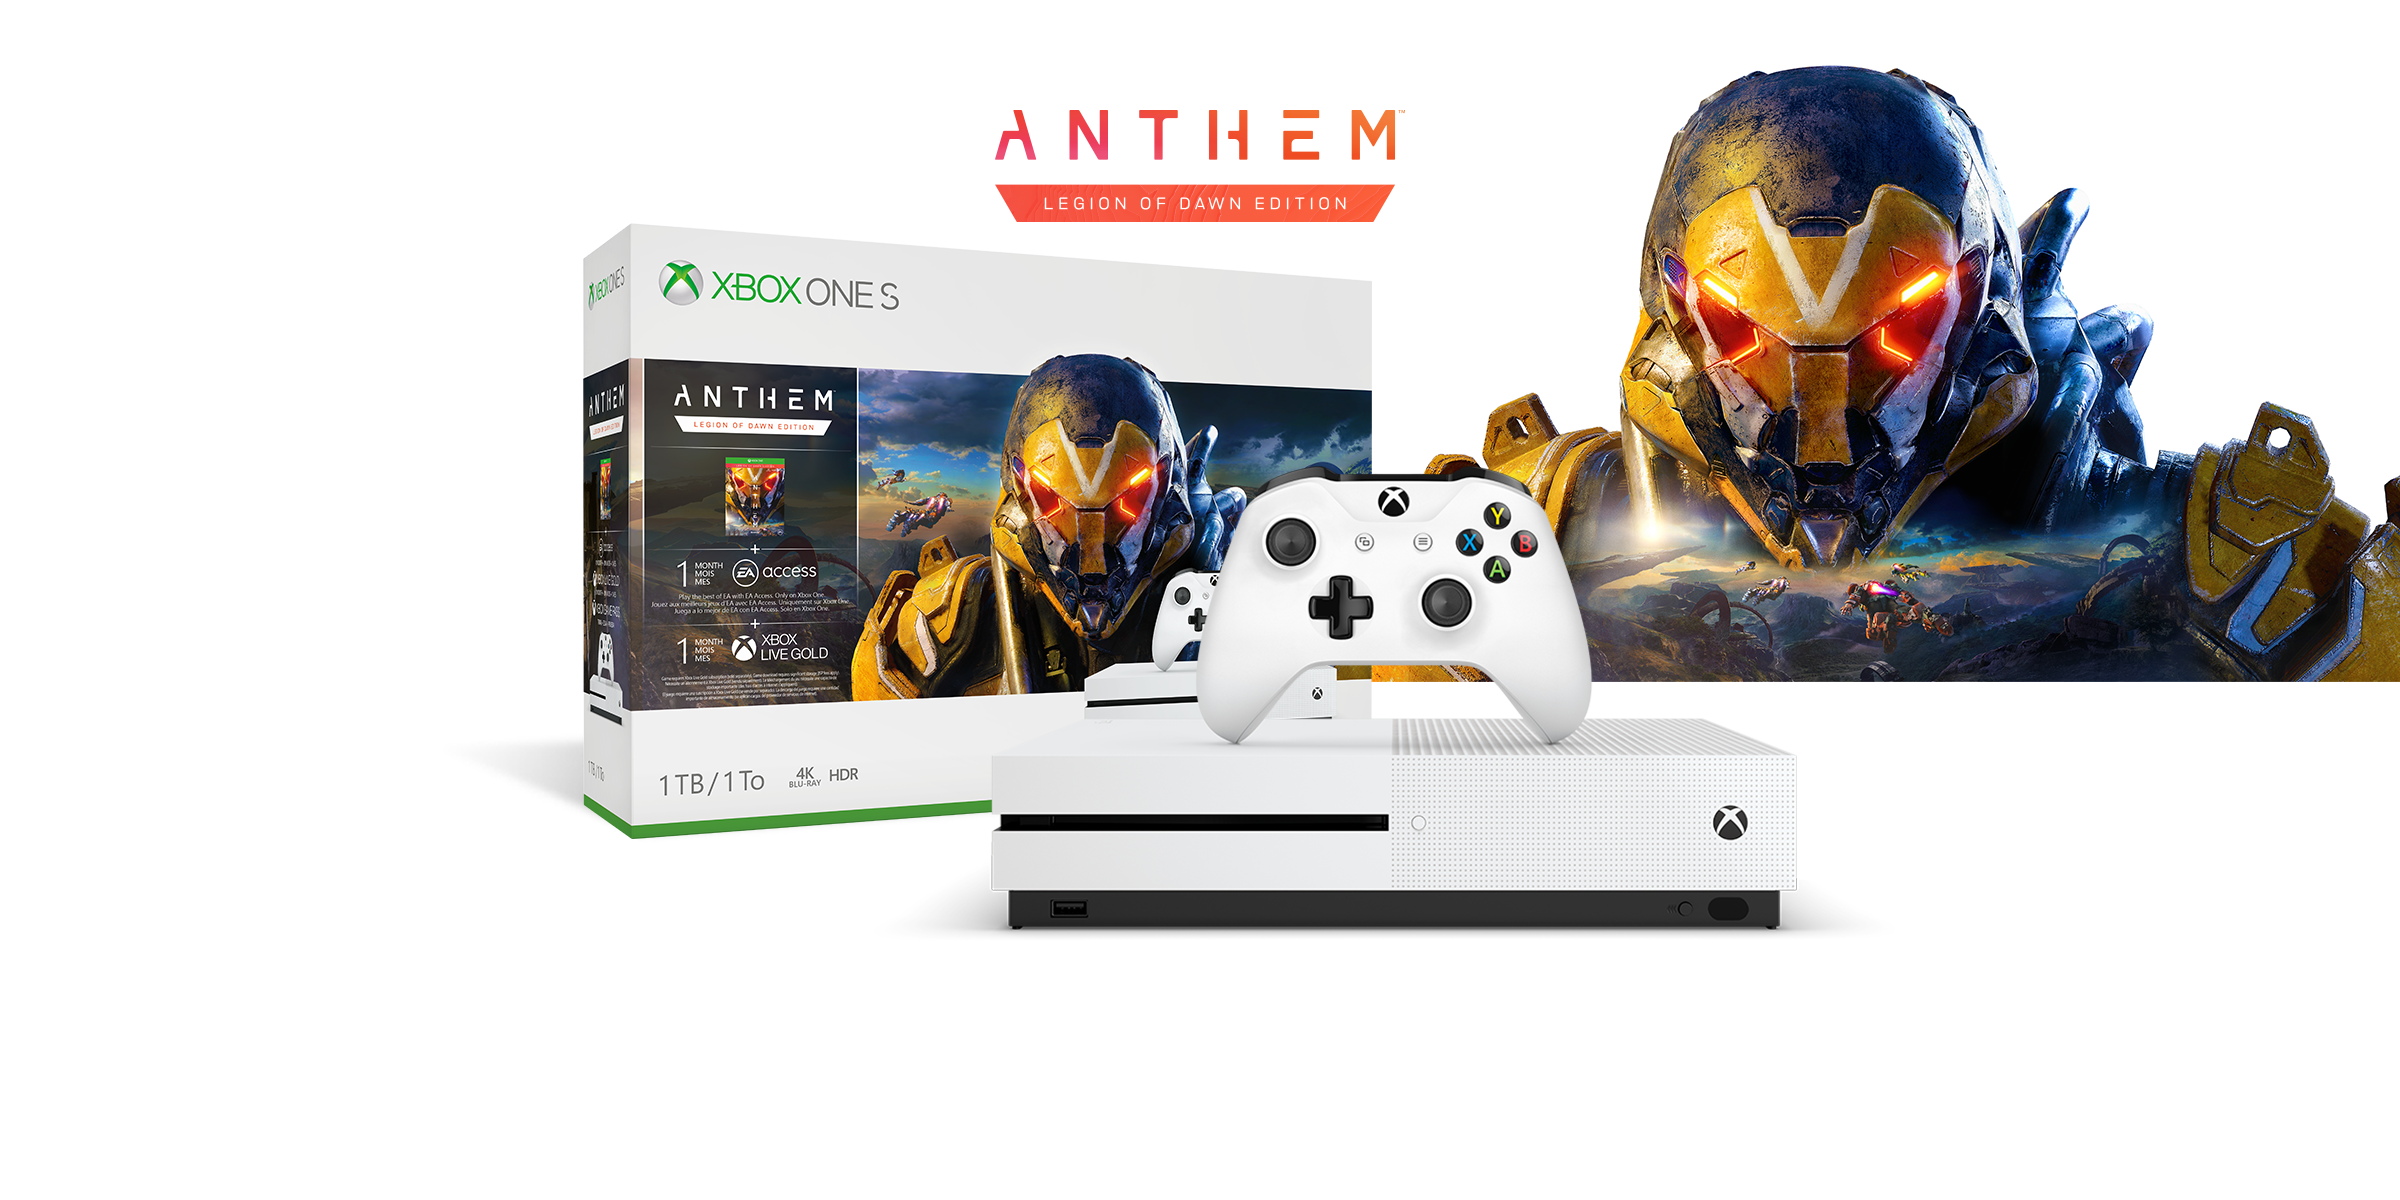 Xbox One S Anthem Bundle box art with the Xbox One S console in front of the head of an exosuit